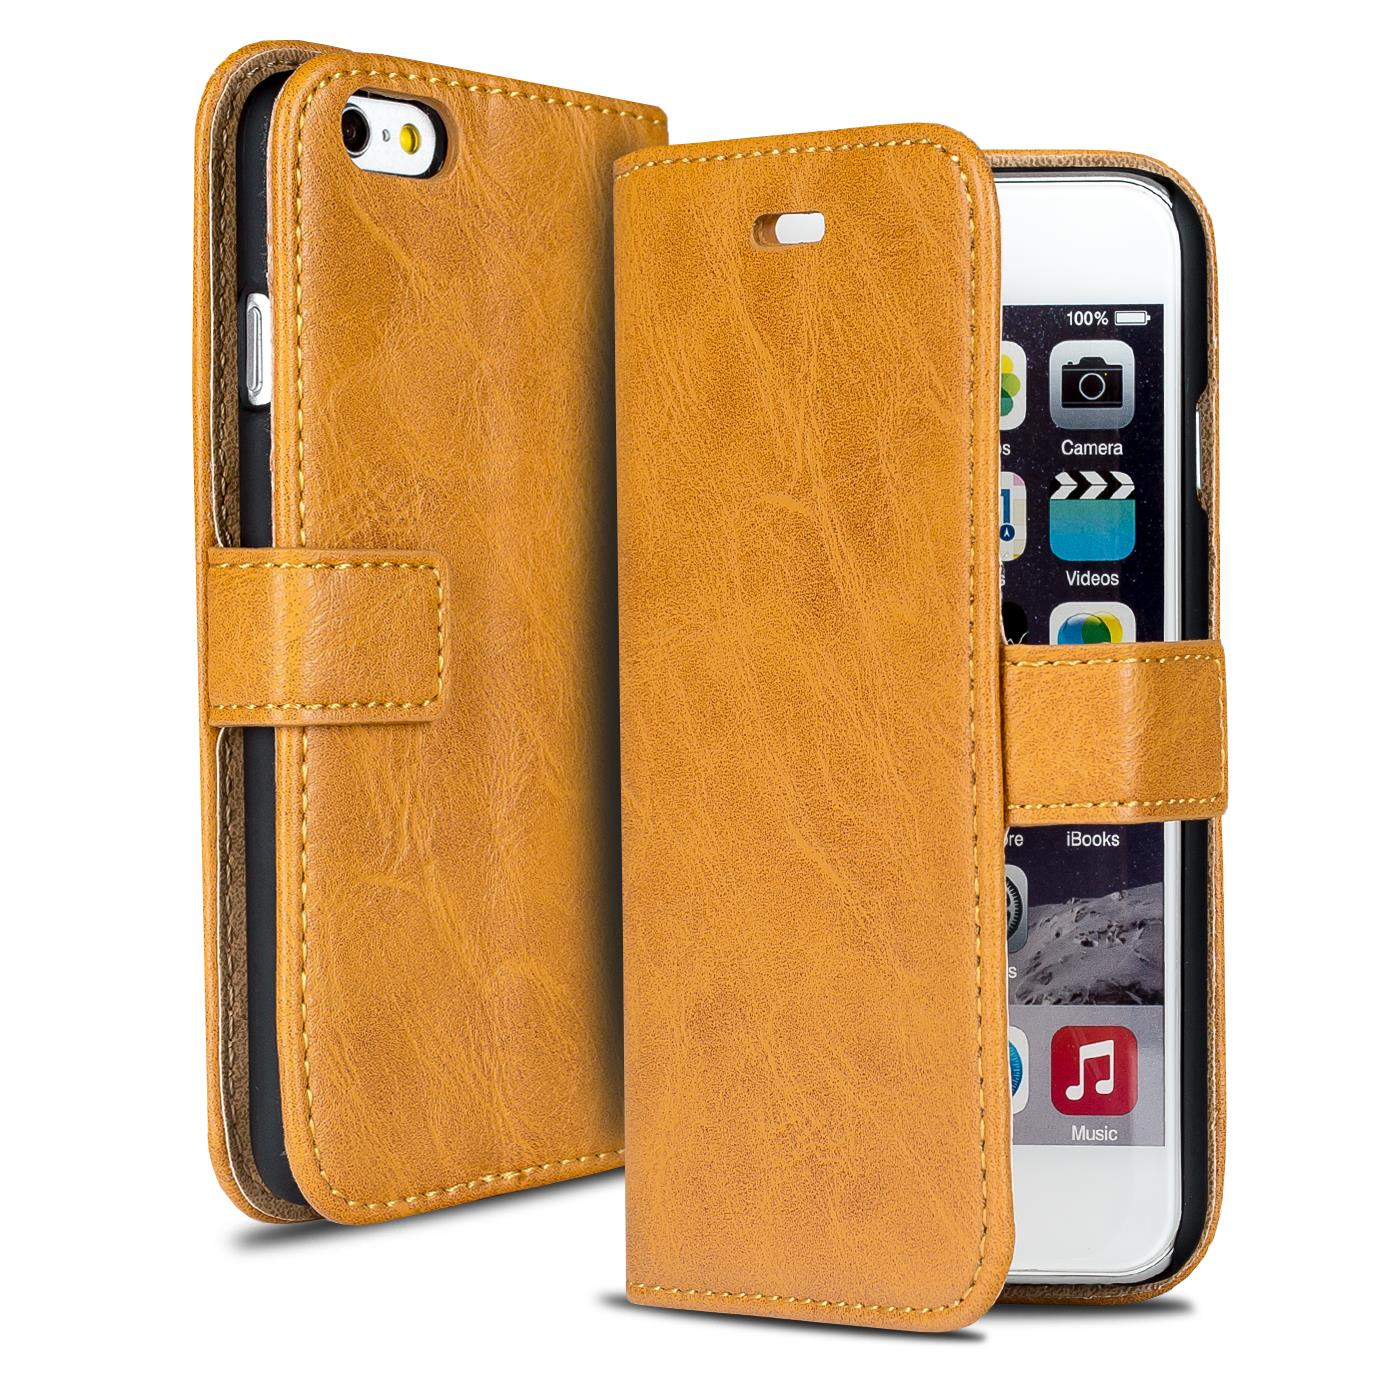 tui style livre pour apple iphone housse t l portable sac rabattable etui ebay. Black Bedroom Furniture Sets. Home Design Ideas